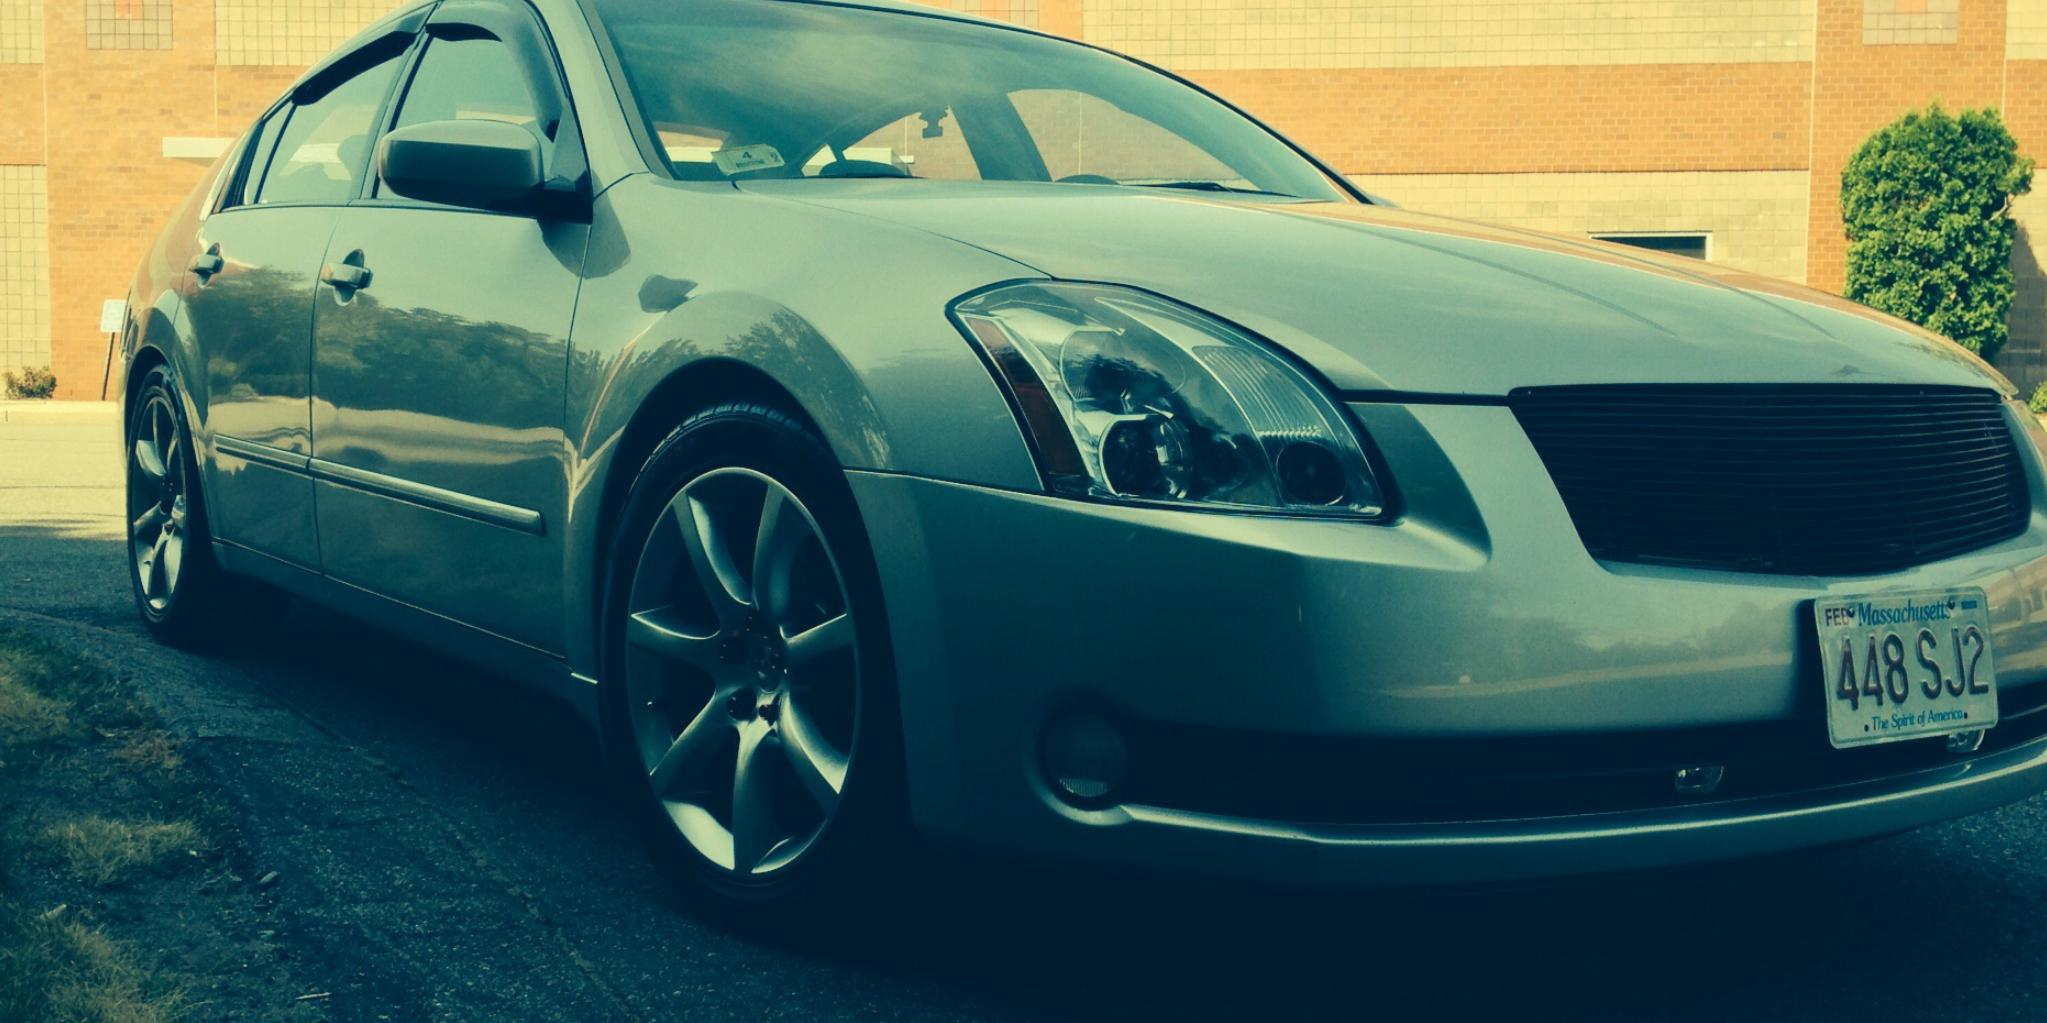 KING LS ONE1 2005 Nissan Maxima